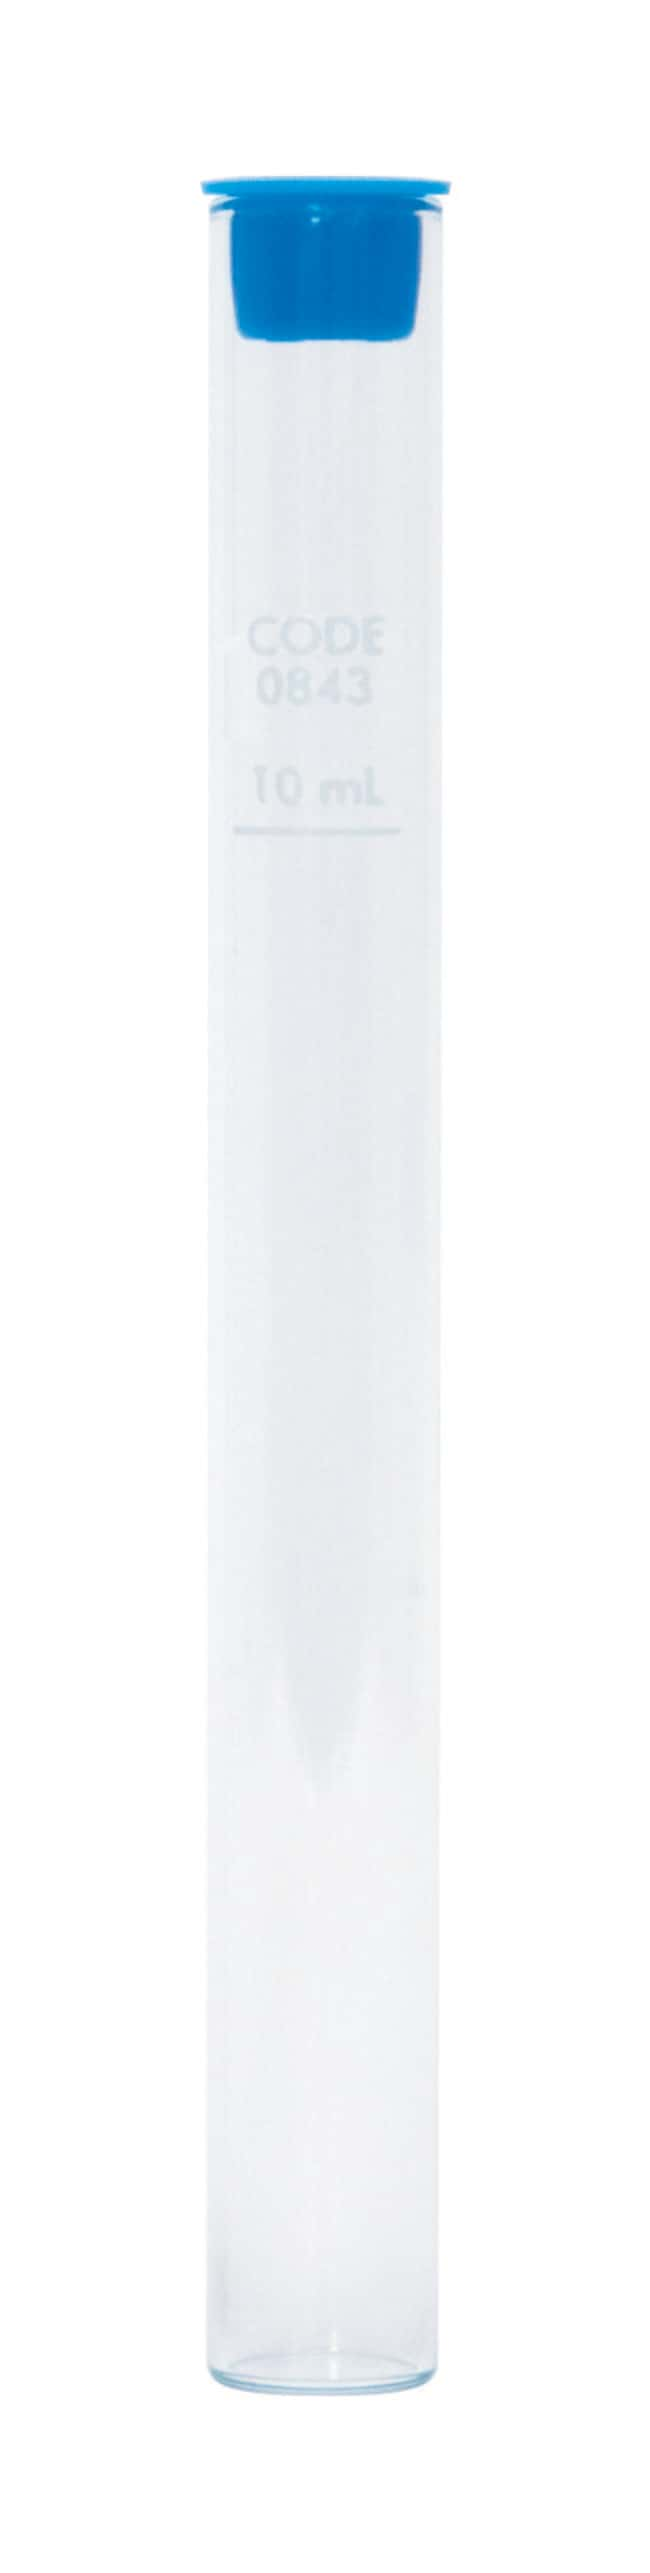 LaMotte Disposable Glass Test Tubes  10mL:Test Tubes, Vials, Caps and Closures